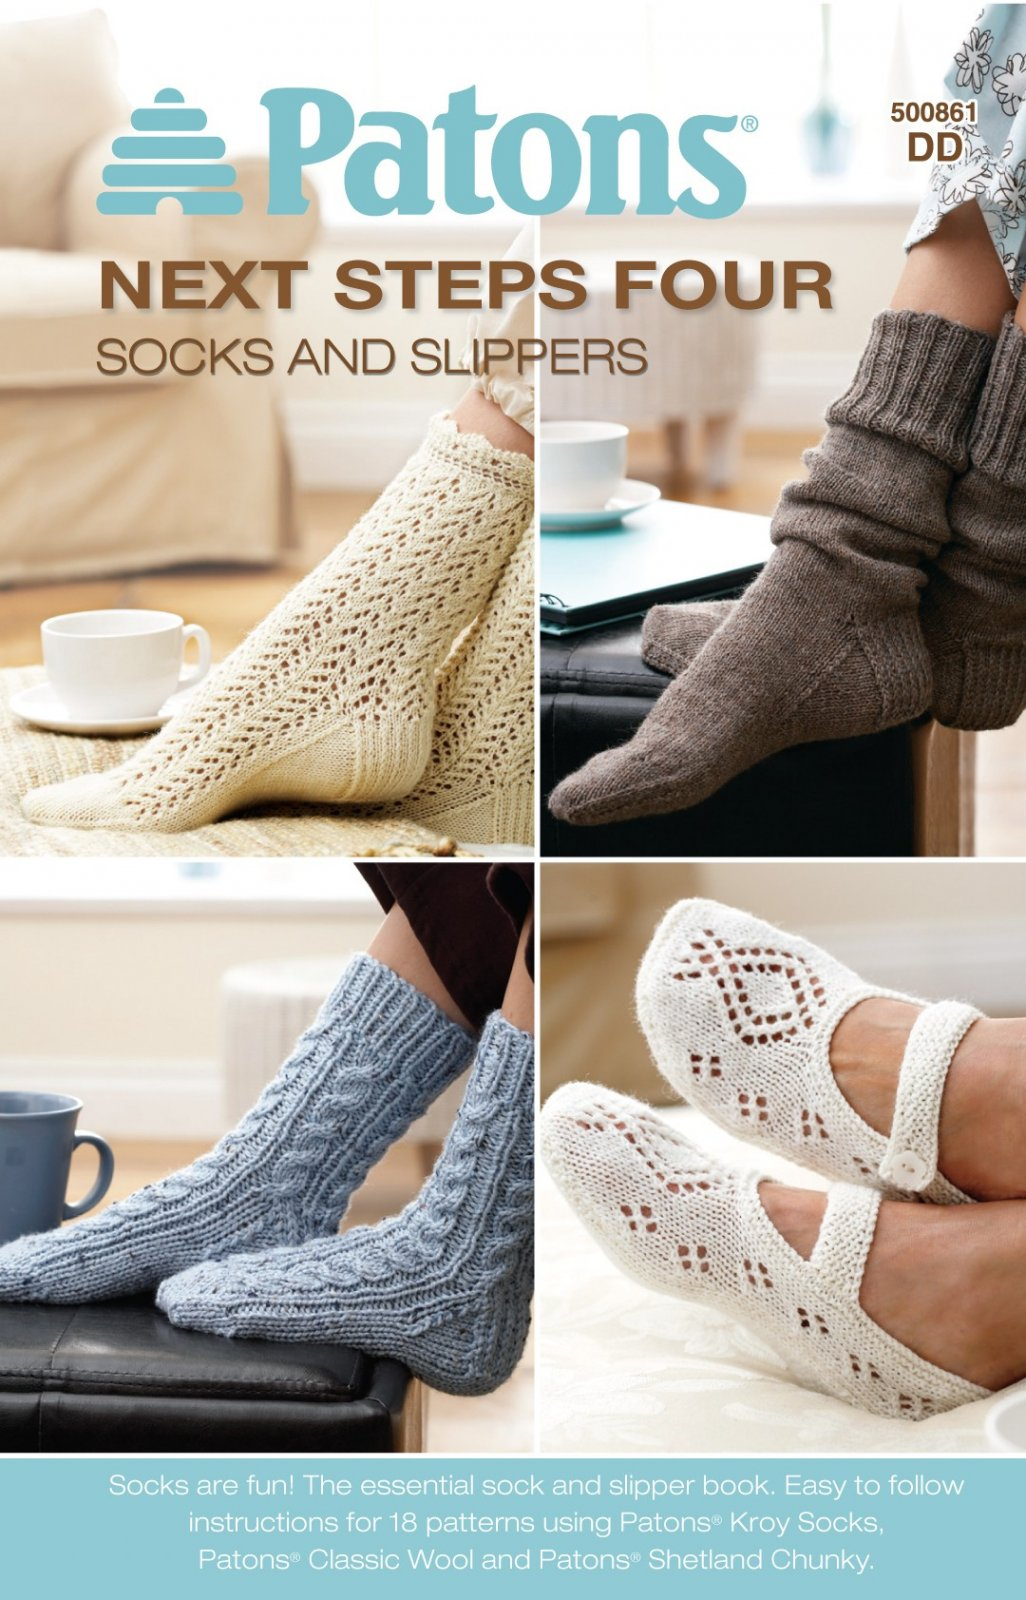 Socks and Slippers - Patons Next Steps 4